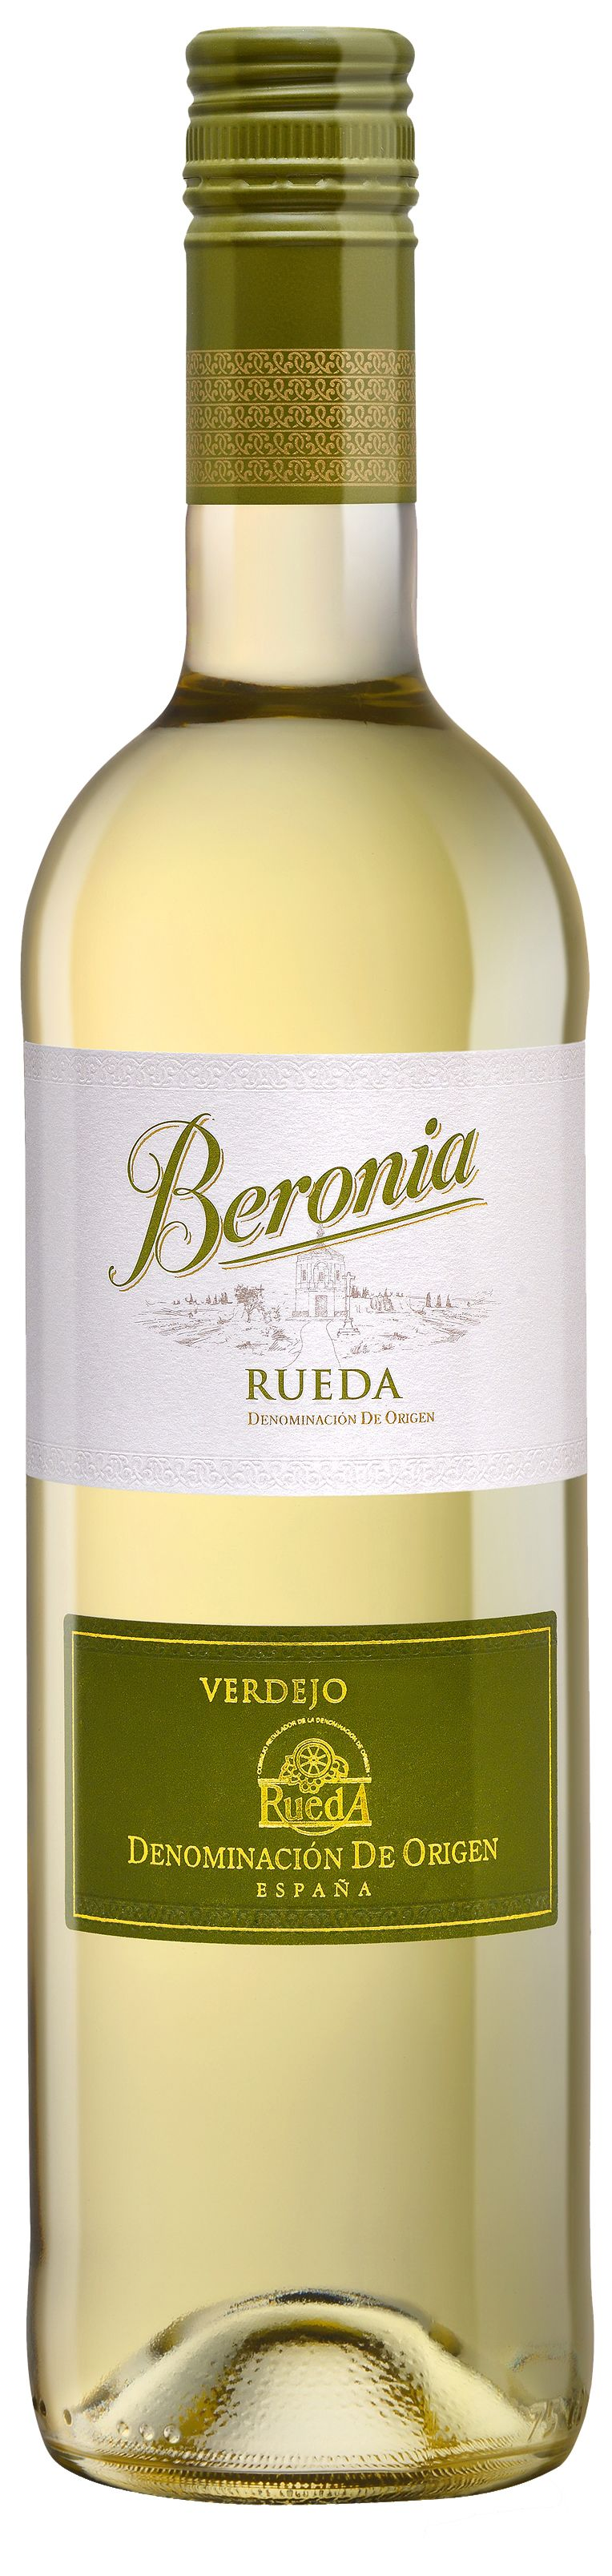 Bodegas Beronia Rueda 2017  Front Bottle Shot